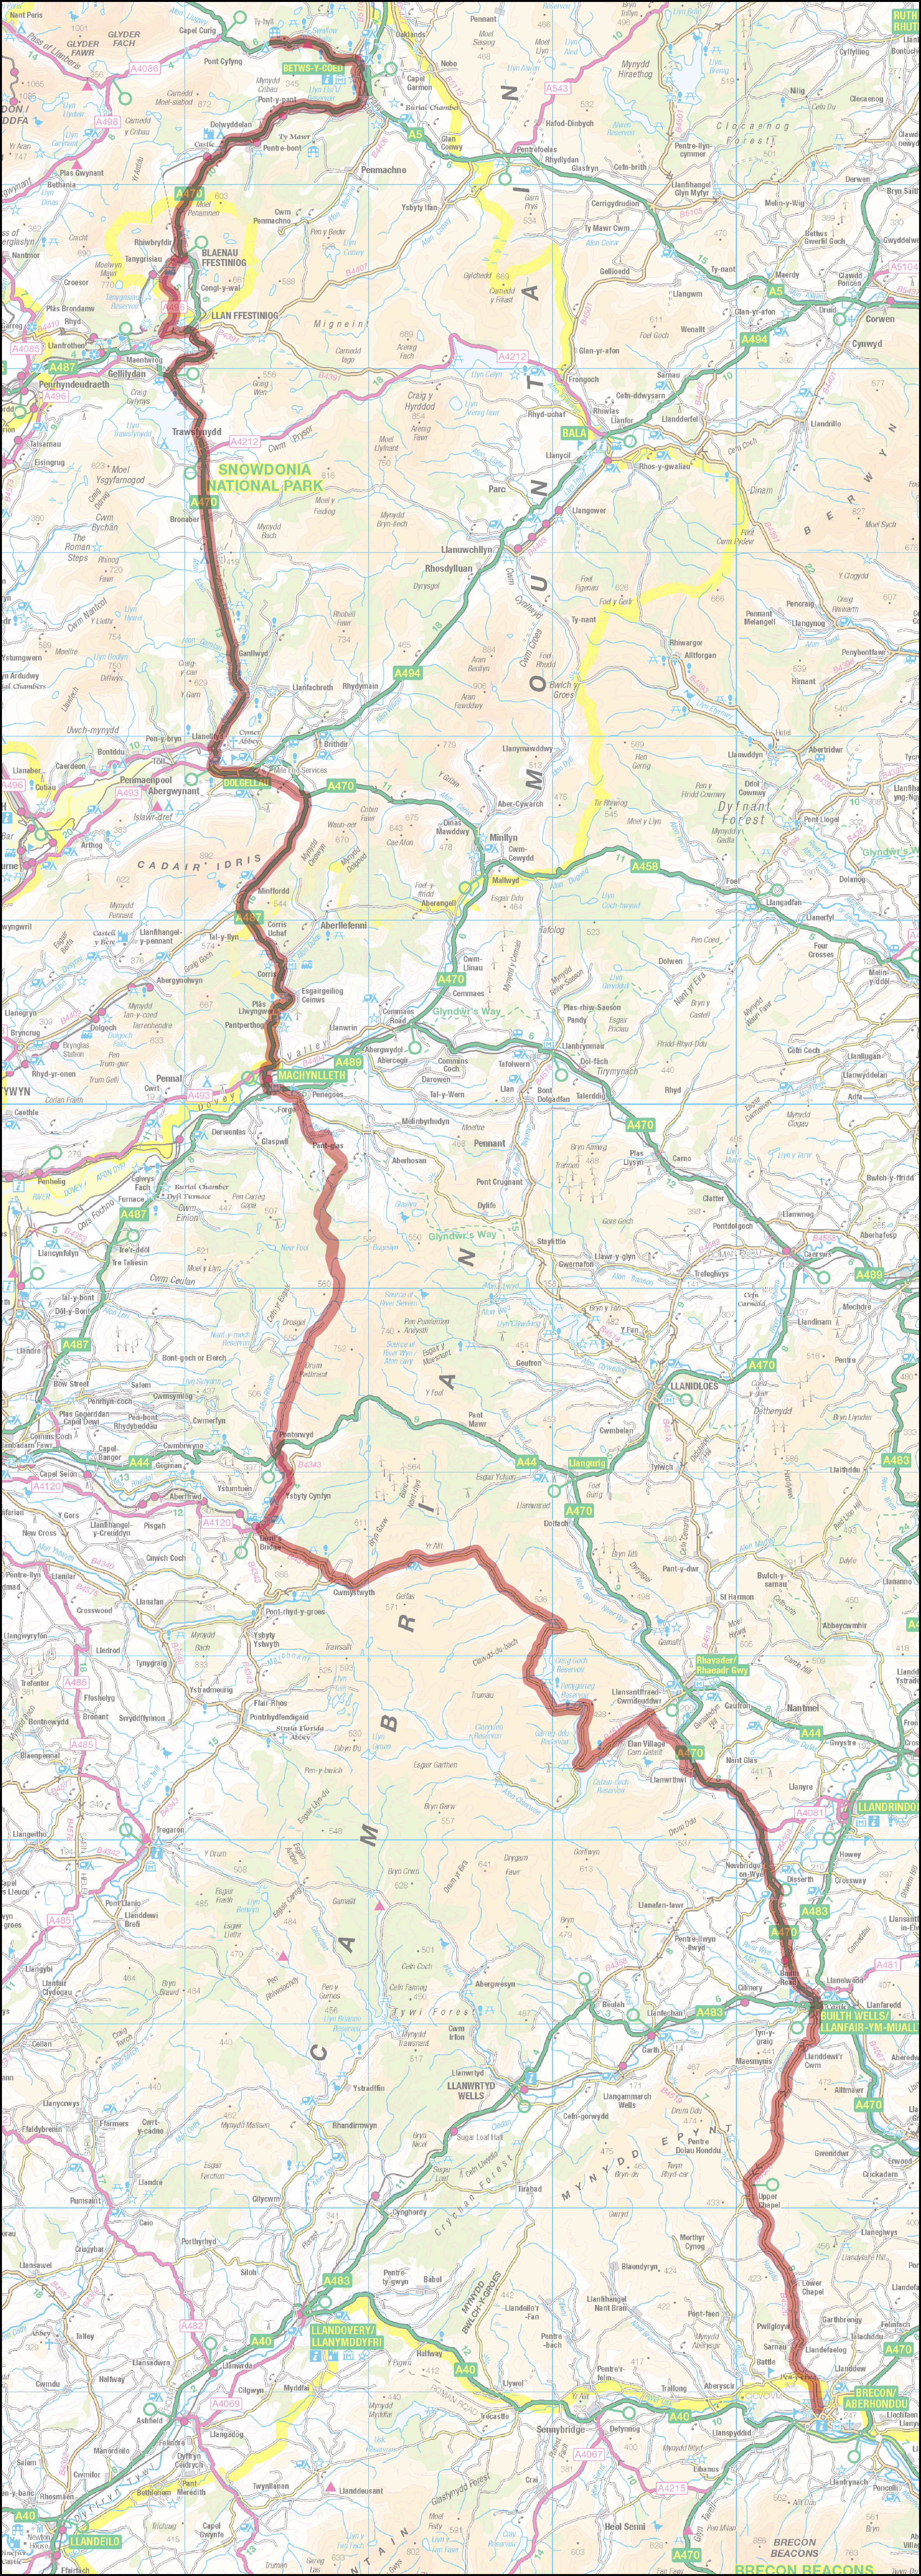 24_Cycle 8 (Transition 4)_BC 4 to Brecon.jpg